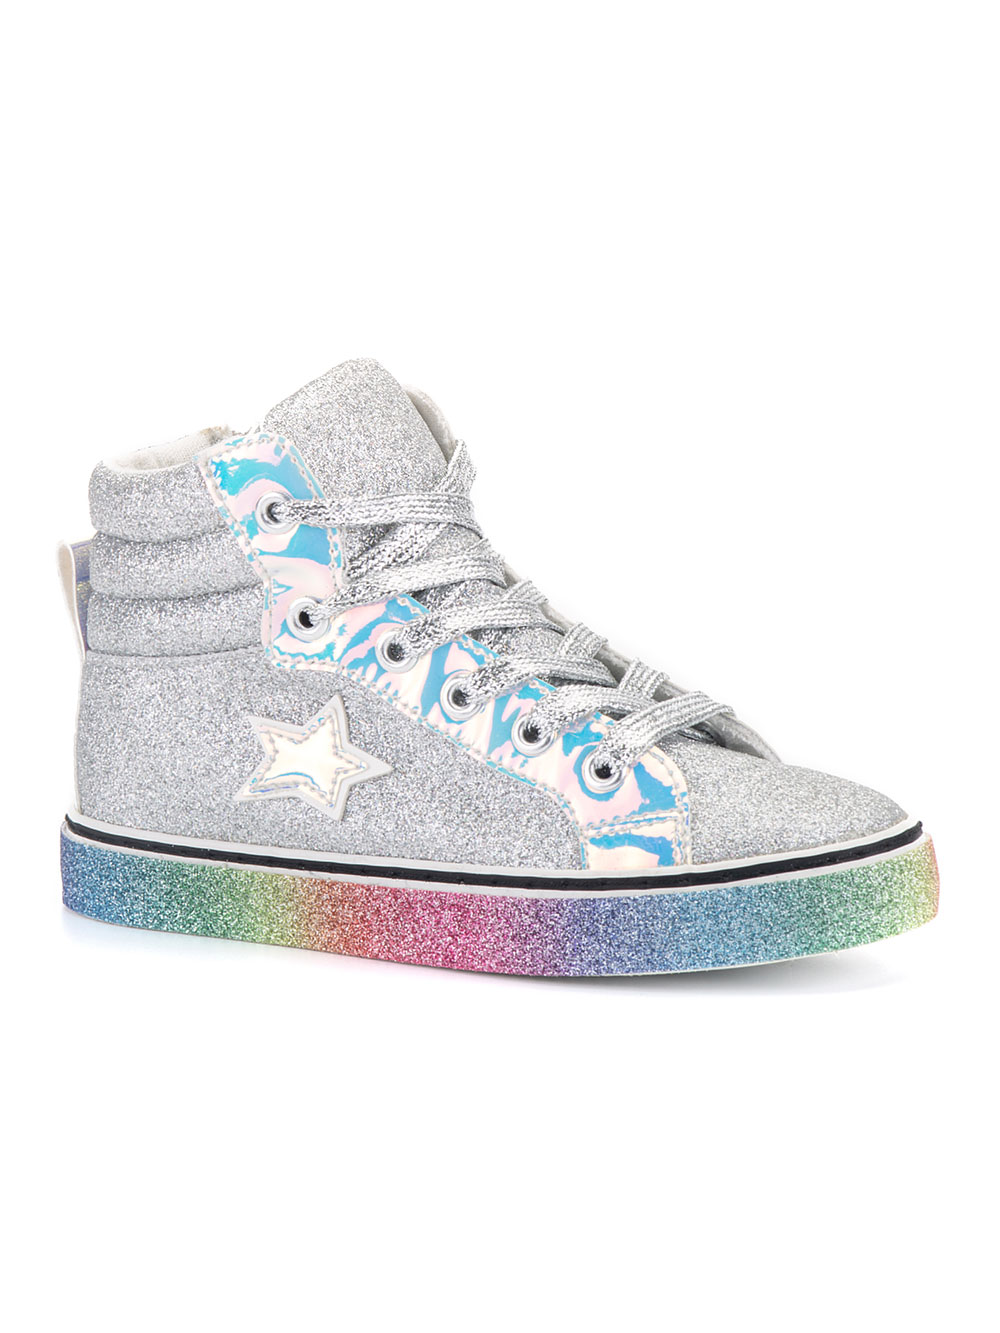 Sneakers Iridescent Upper